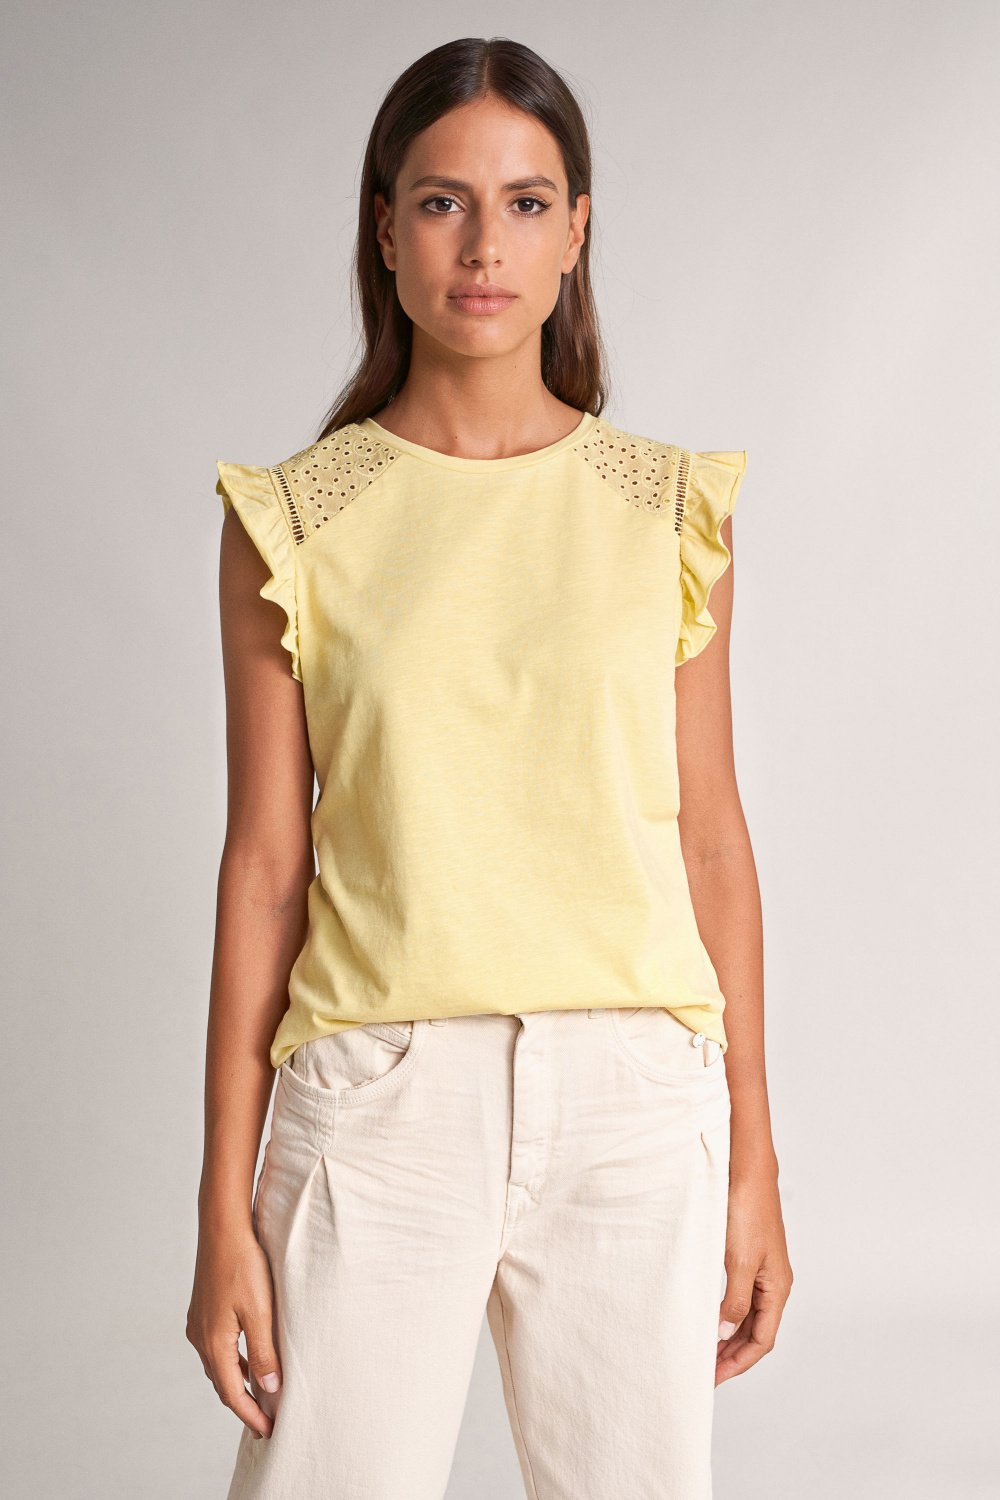 Top with lace and frills on sleeves - Salsa